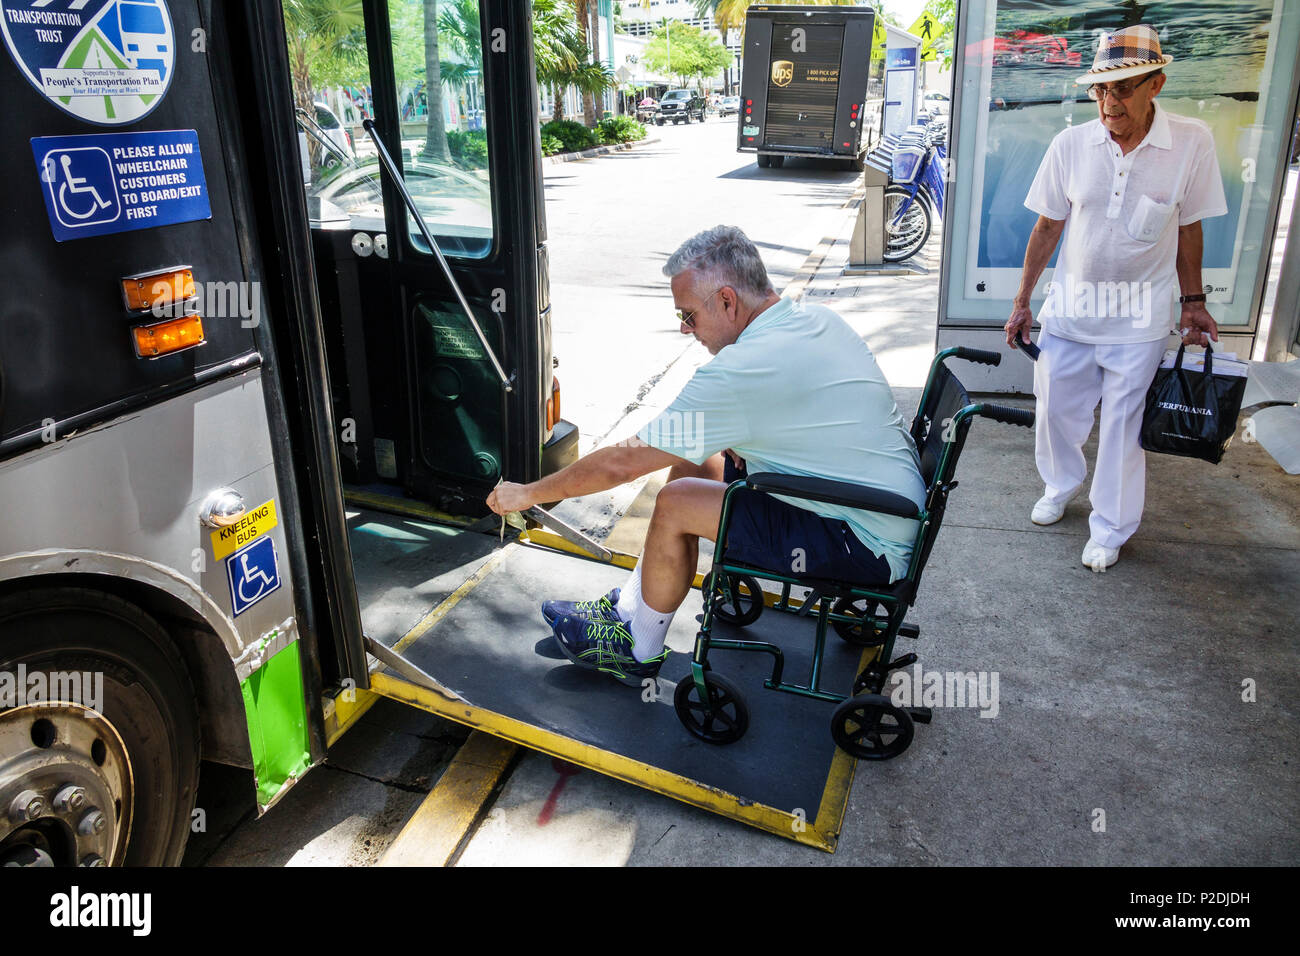 Disabled Ramp Bus Stock Photos & Disabled Ramp Bus Stock ...